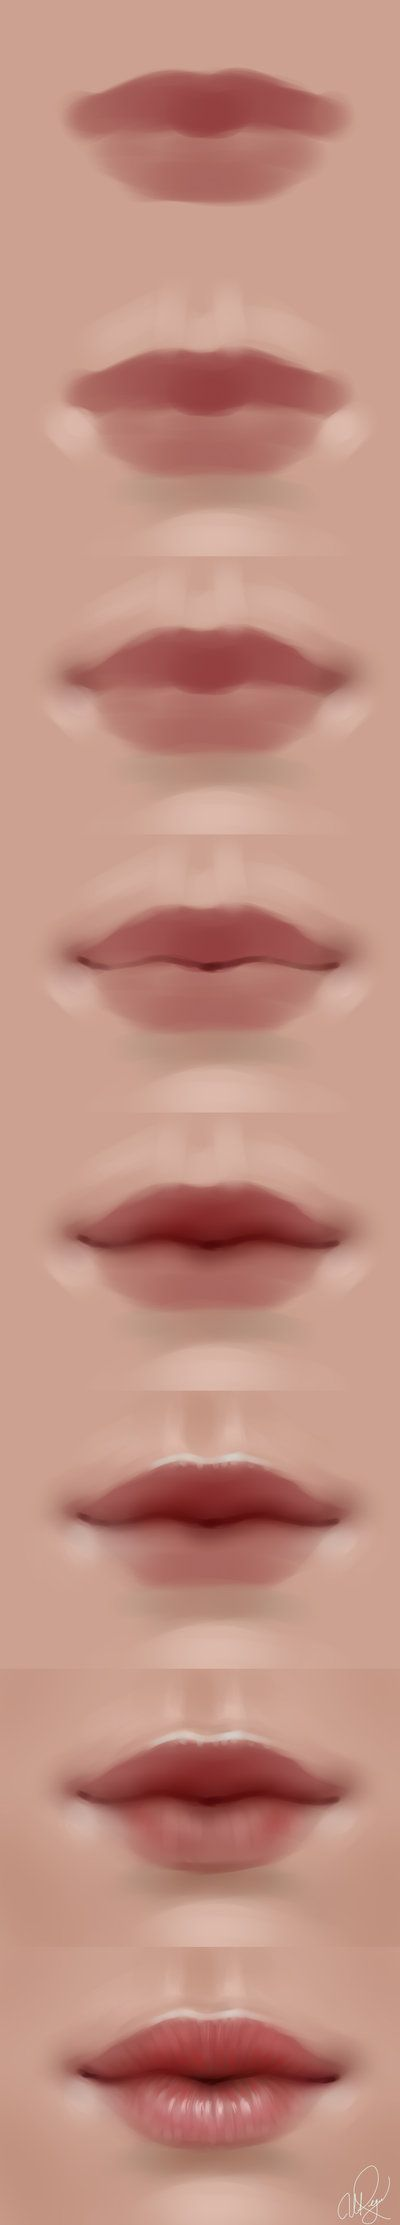 """...before you freak out, it's a step by step assist for artists re lips, but it'll hook you up to the site for everything else you might want or need. :) """"lips walkthrough [dA]"""":"""